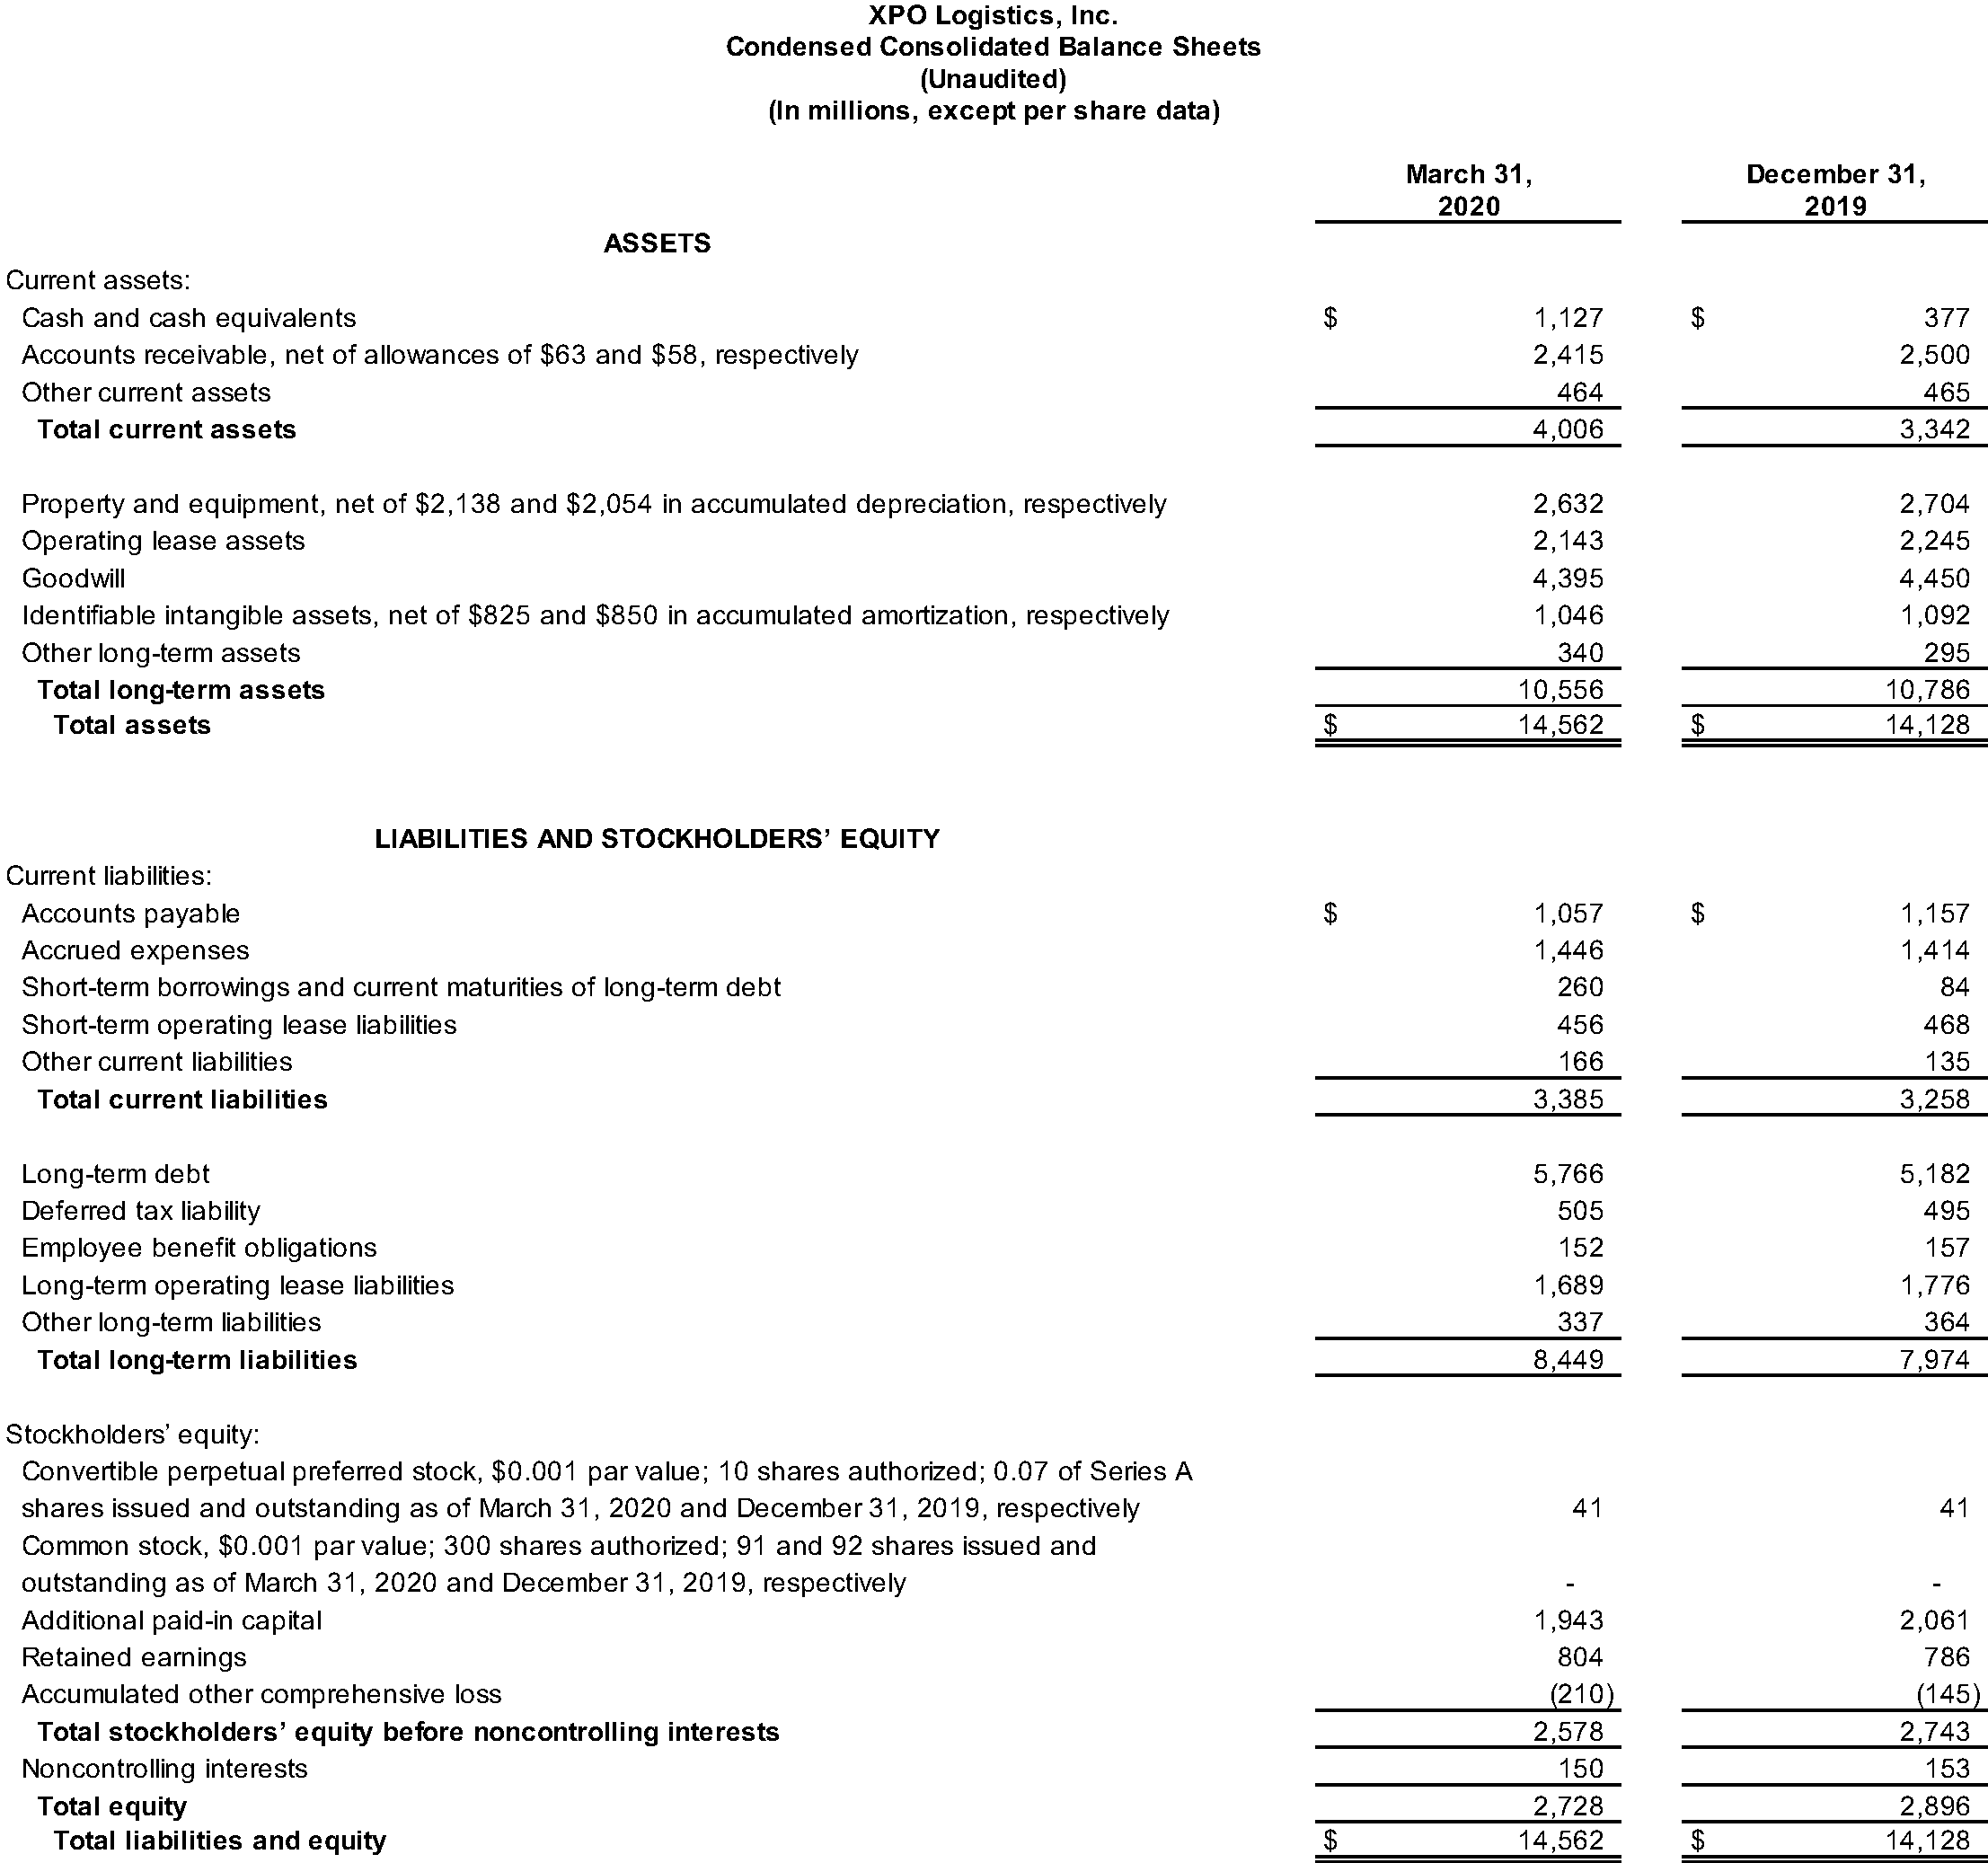 Condensed Consolidated Balance Sheets